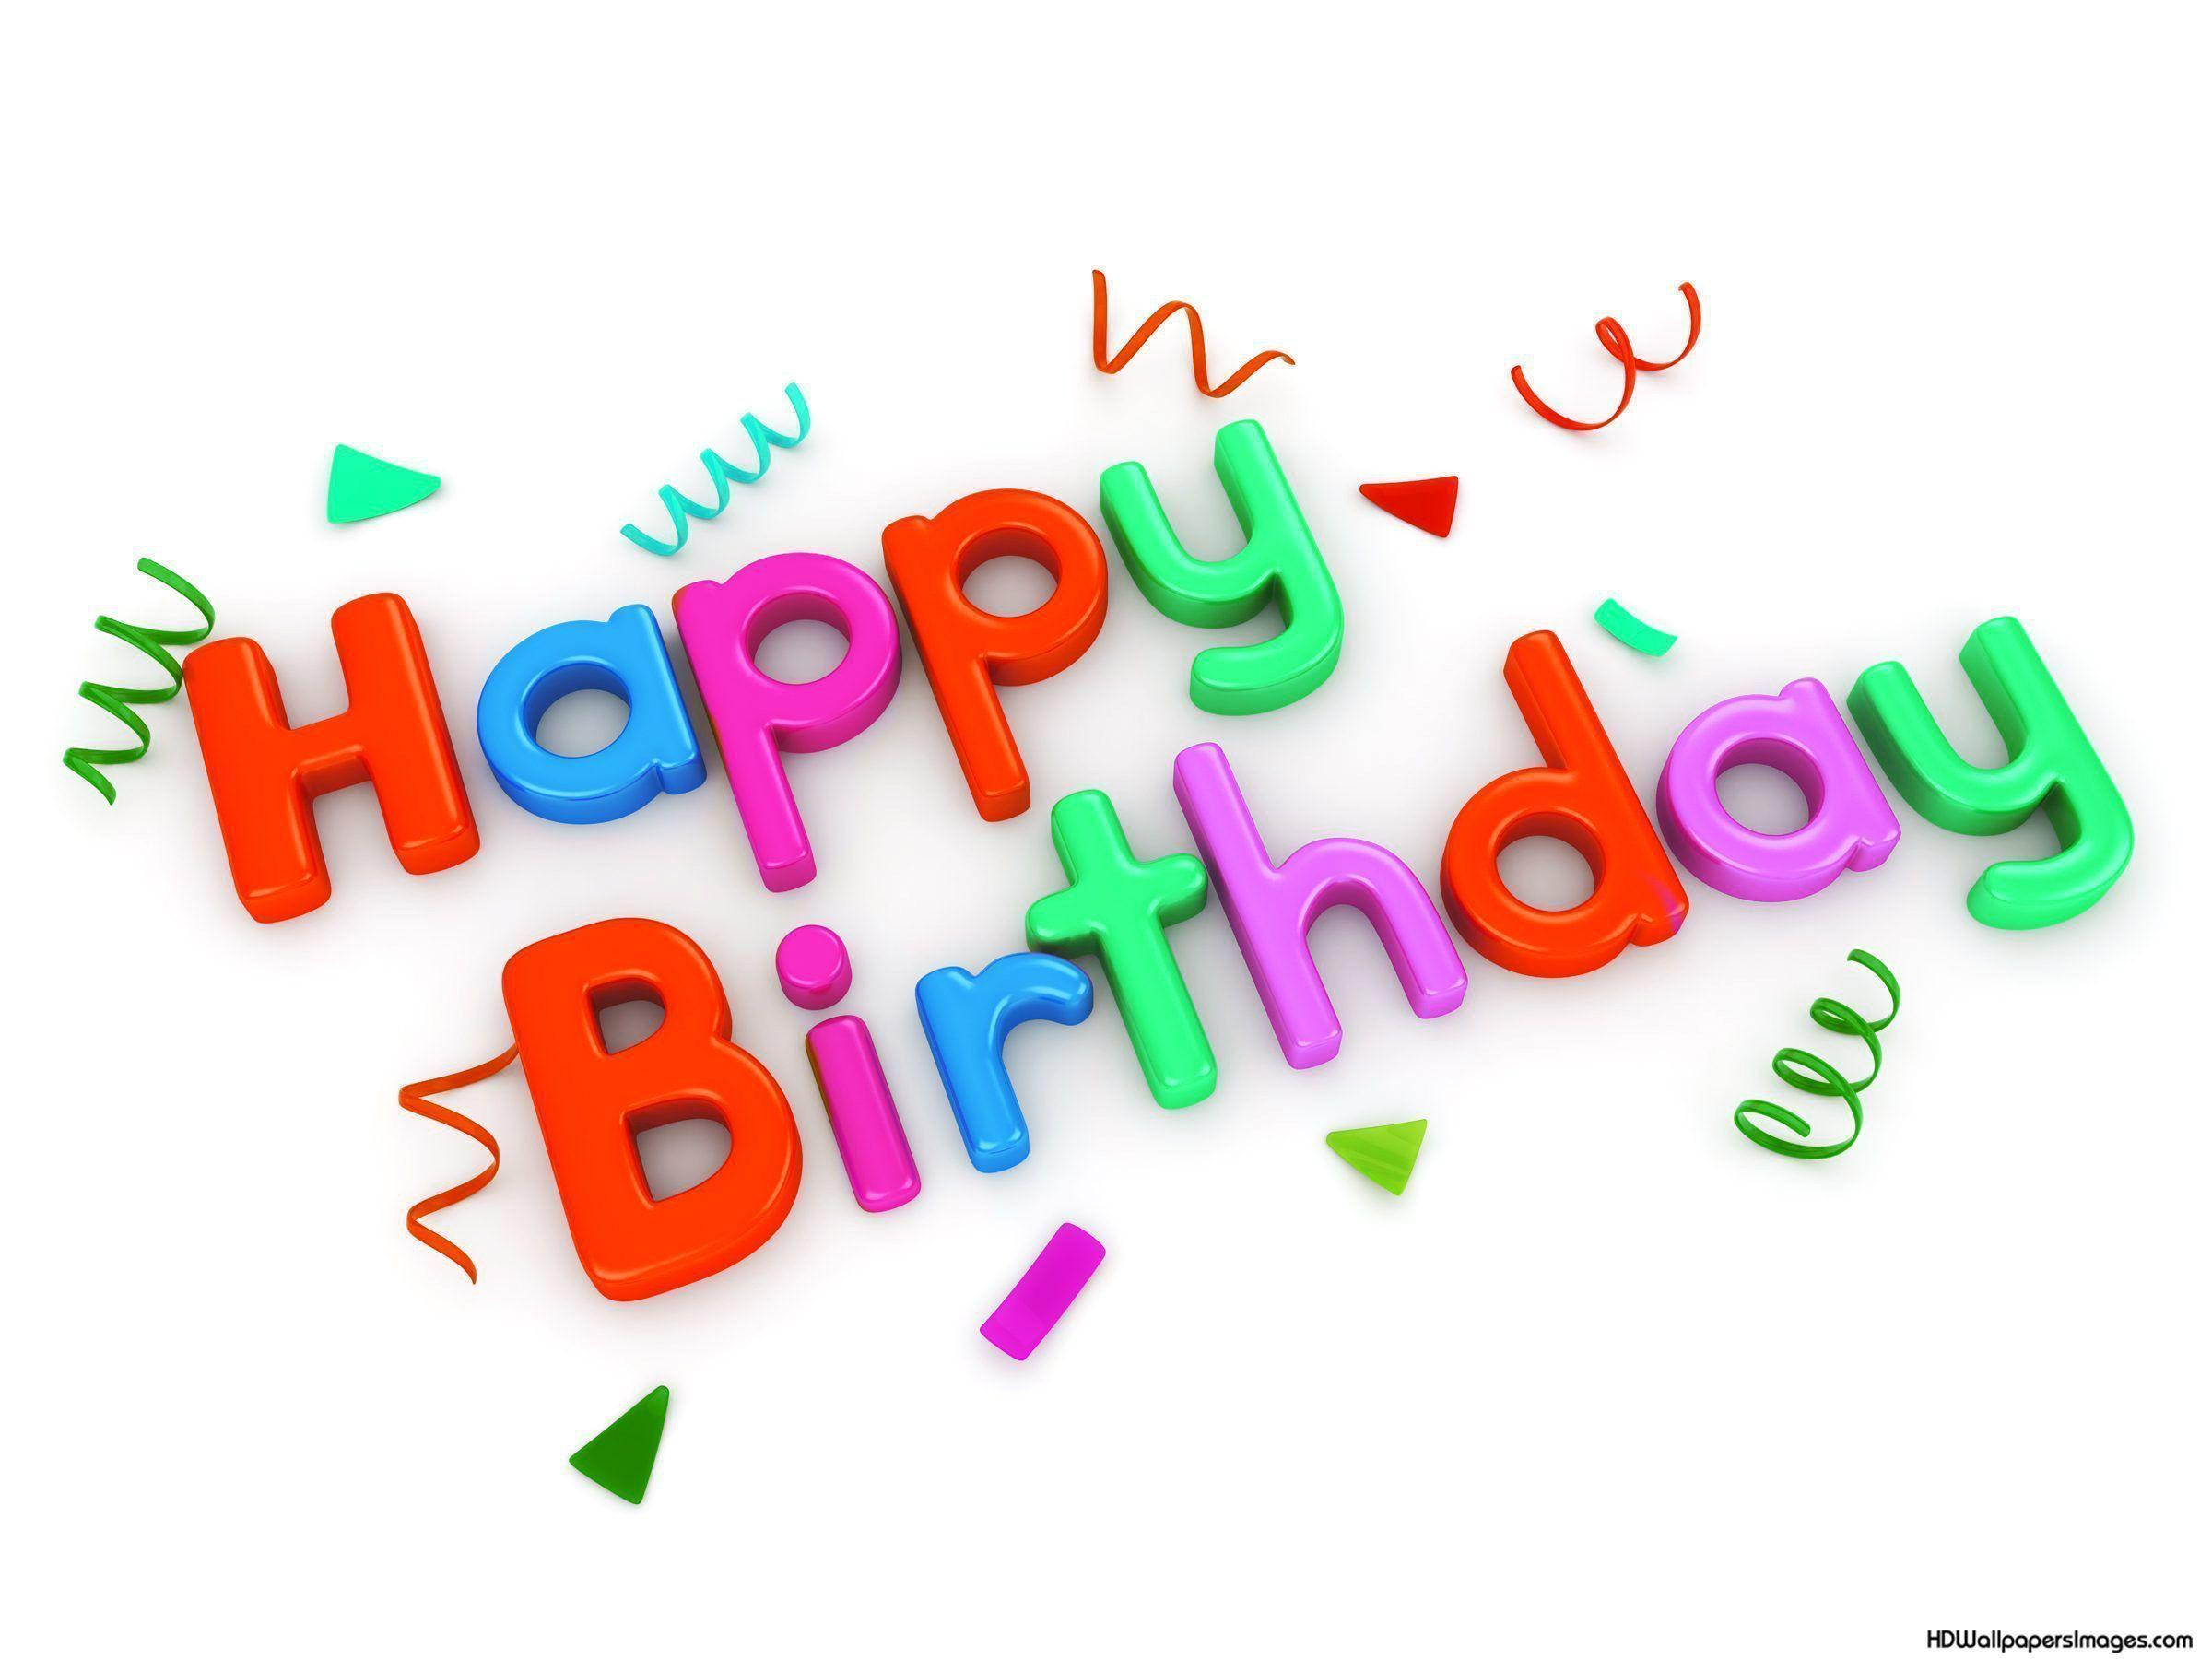 Happy Birthday Wallpapers Pictures - Wallpaper Cave